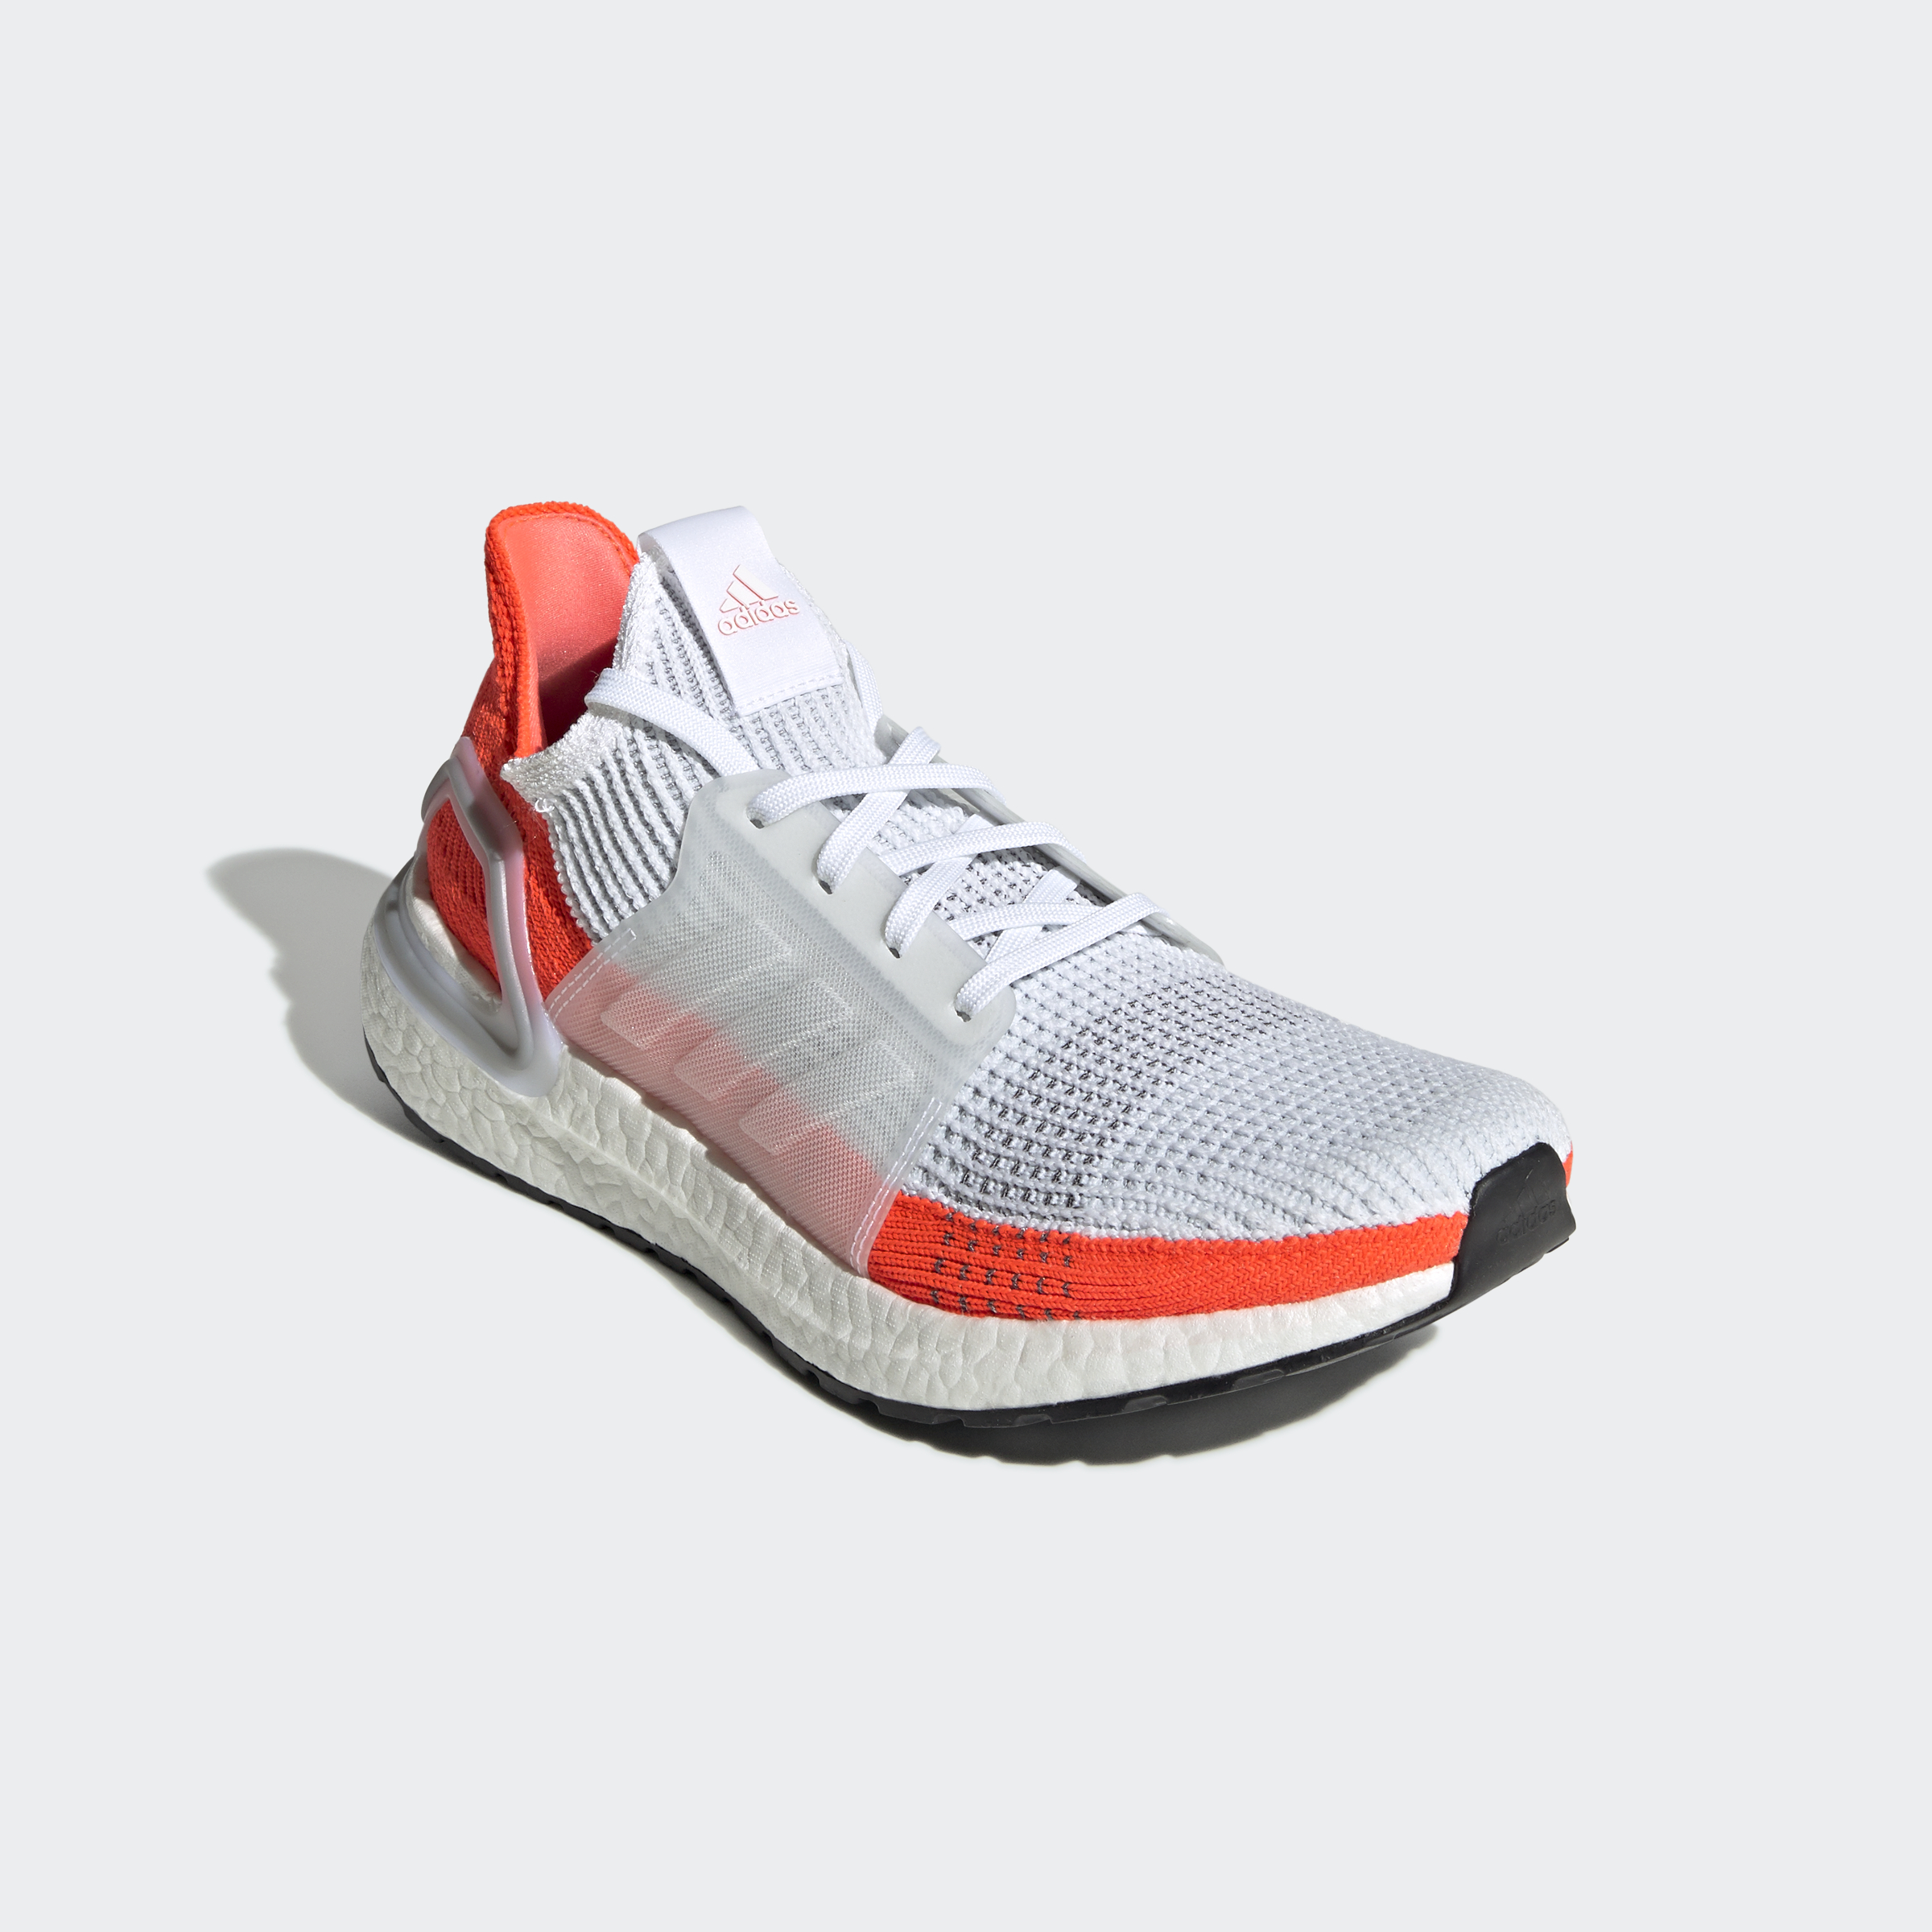 adidas-Ultraboost-19-Shoes-Athletic-amp-Sneakers thumbnail 27